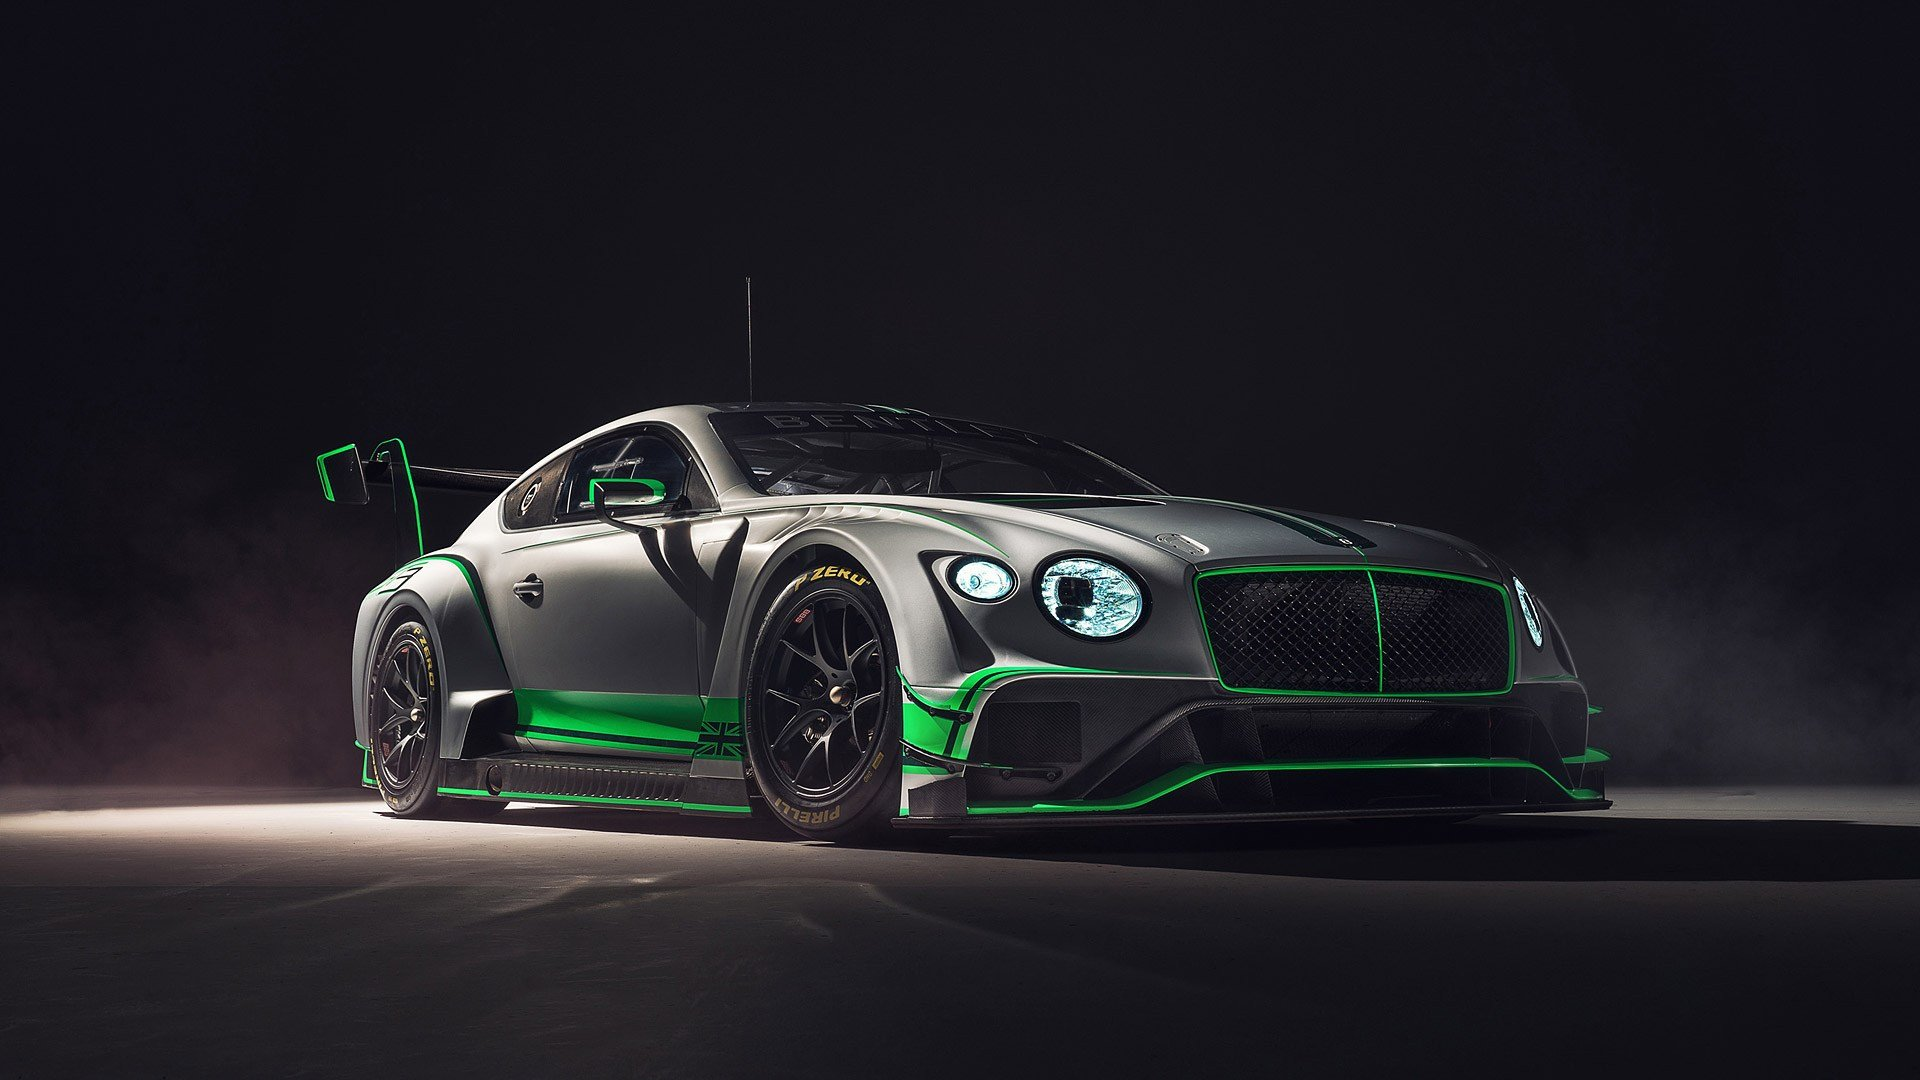 Latest 2018 Bentley Continental Gt3 Wallpapers Hd Images Free Download